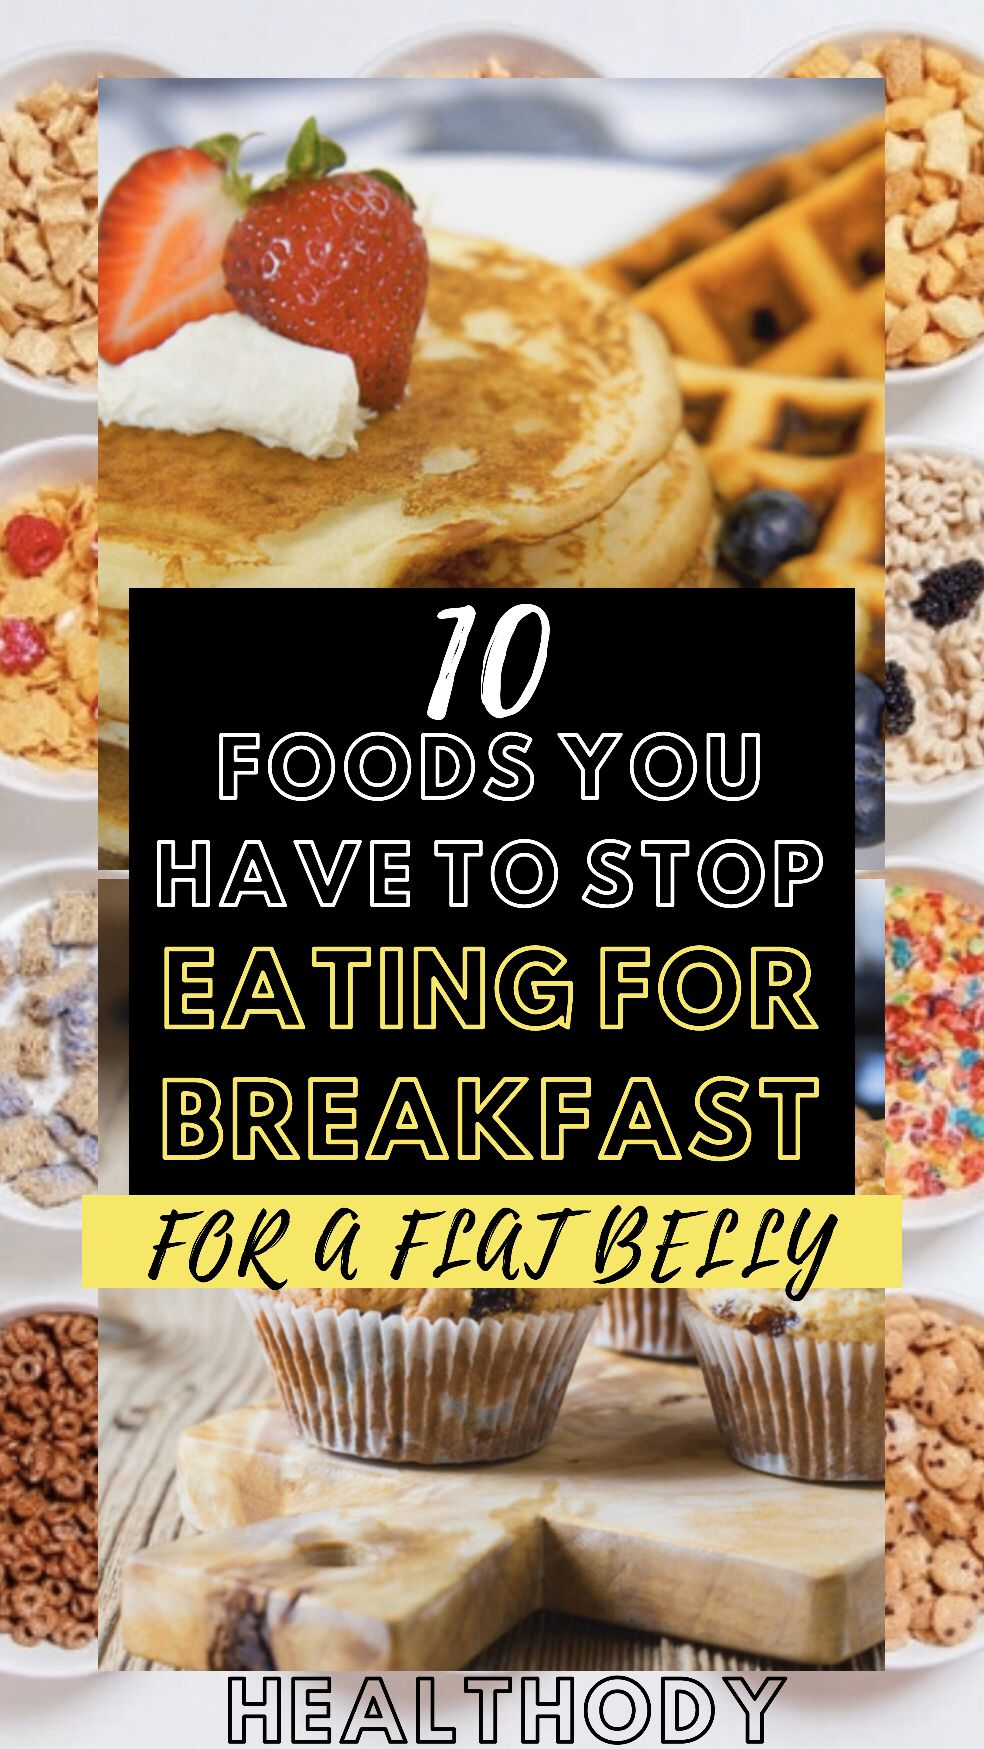 Pin on Healthy eating to lose weight